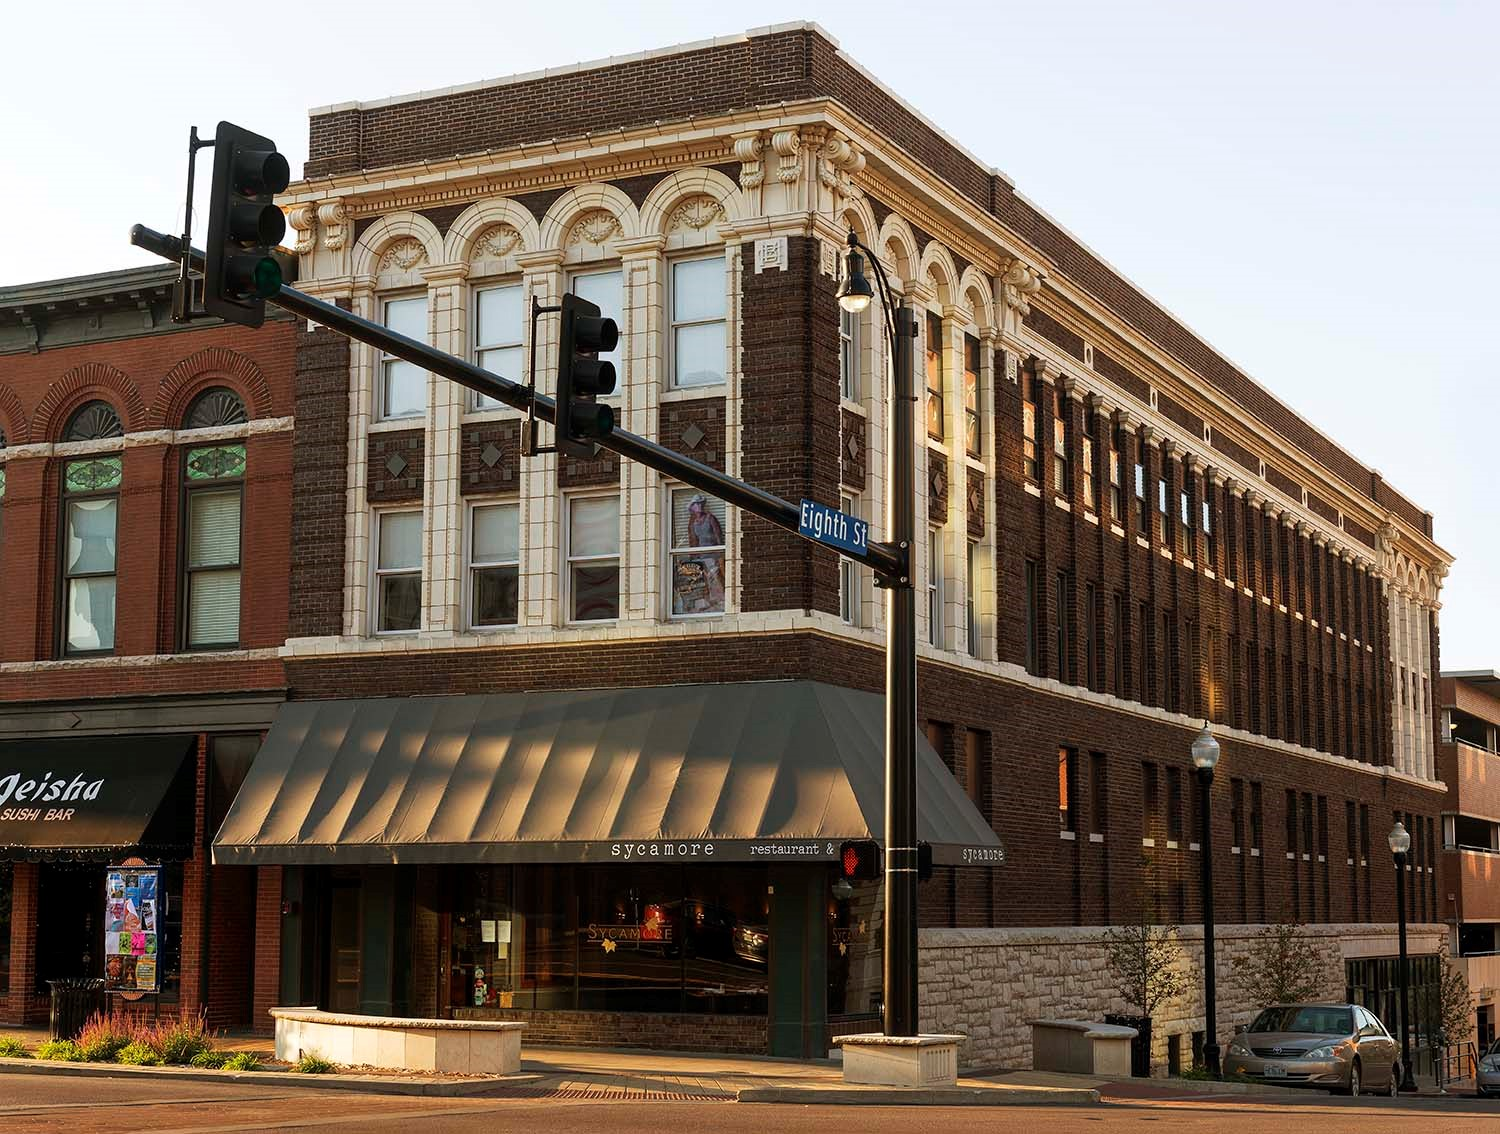 4 bedroom apartments for rent downtown columbia mo atkins - Columbia mo apartments for rent one bedroom ...